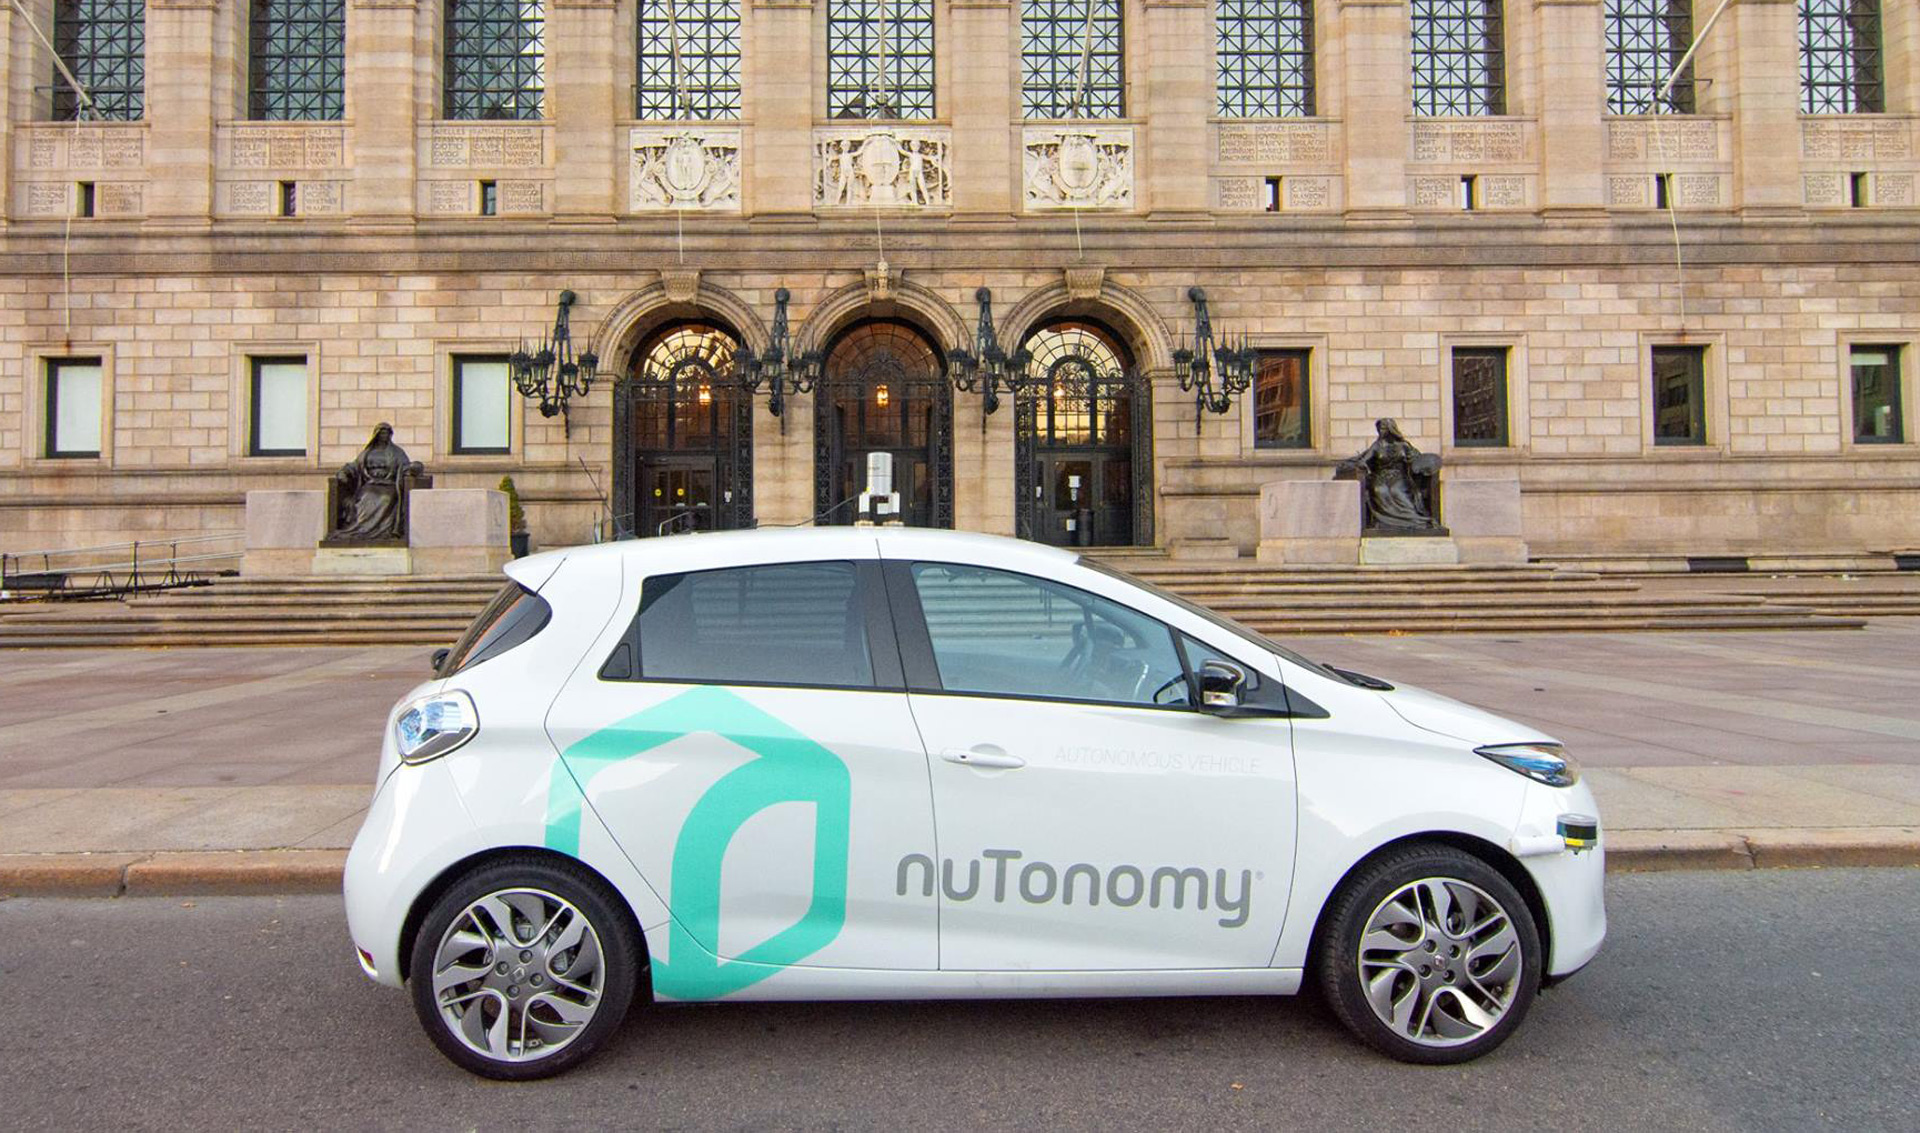 Nutonomy S Self Driving Cars Now Giving Lyft Users Rides